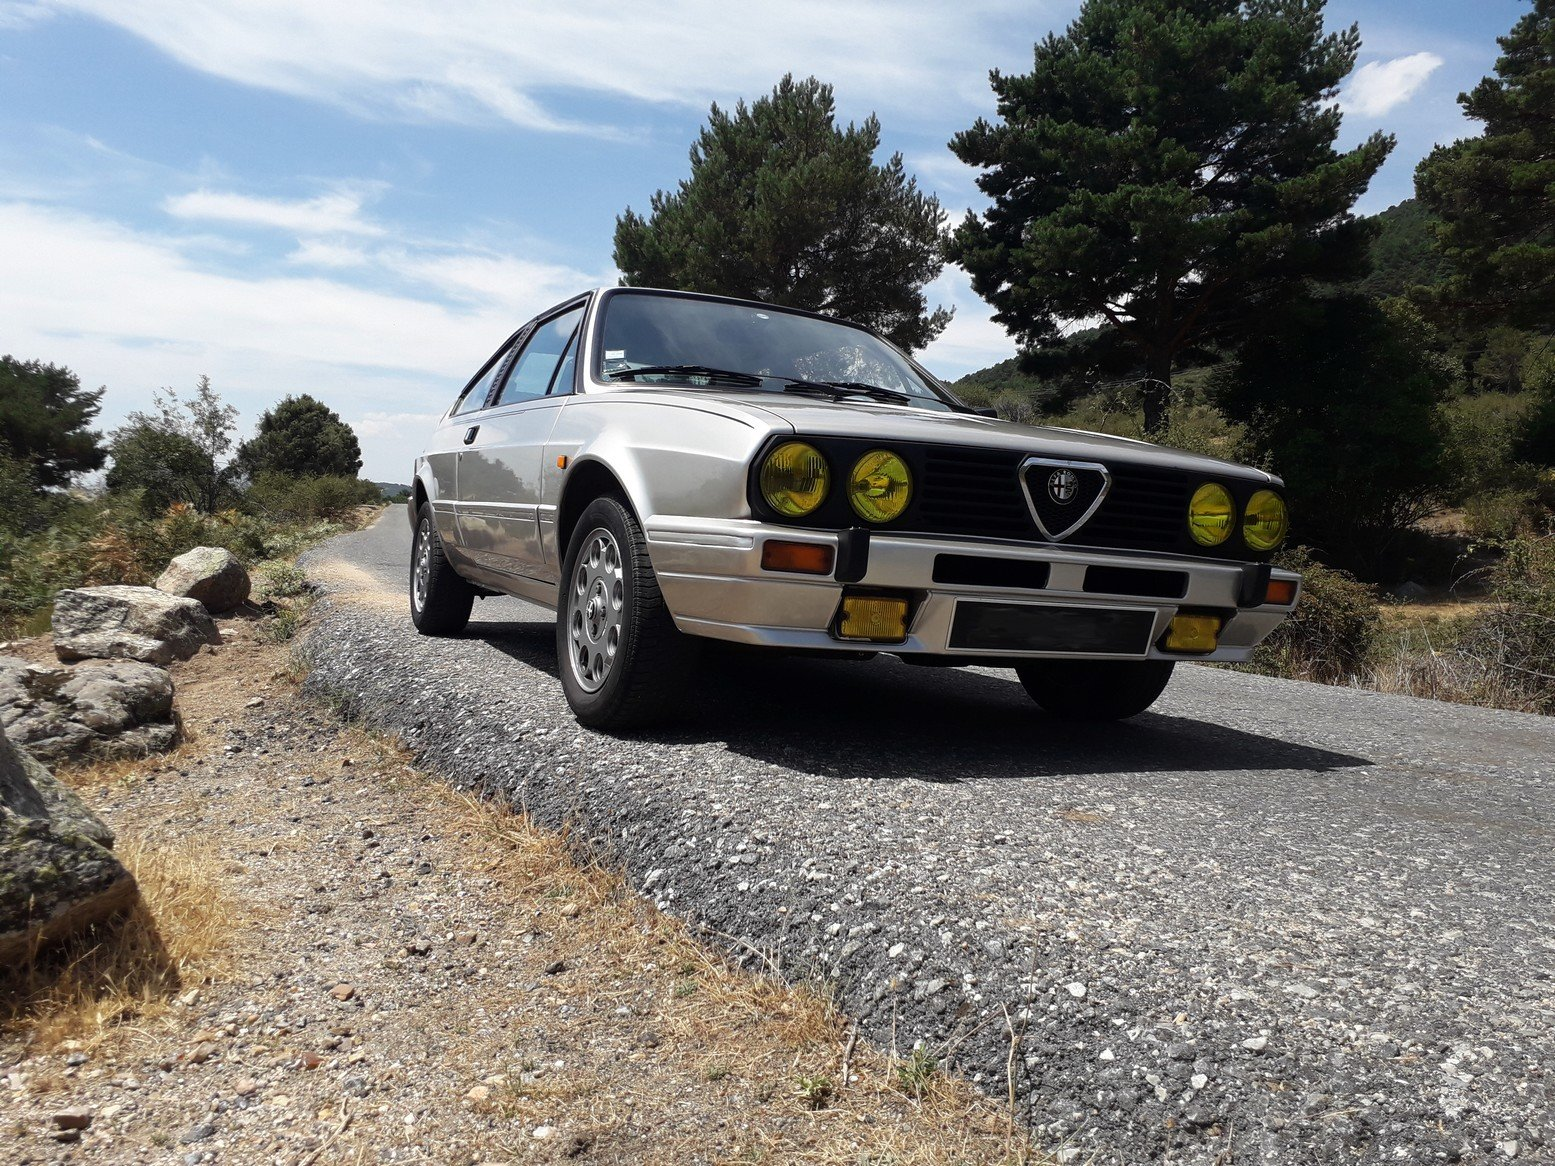 1987 SPRINT GRAND PRIX Limited edition Rare 1 owner  For Sale (picture 1 of 6)